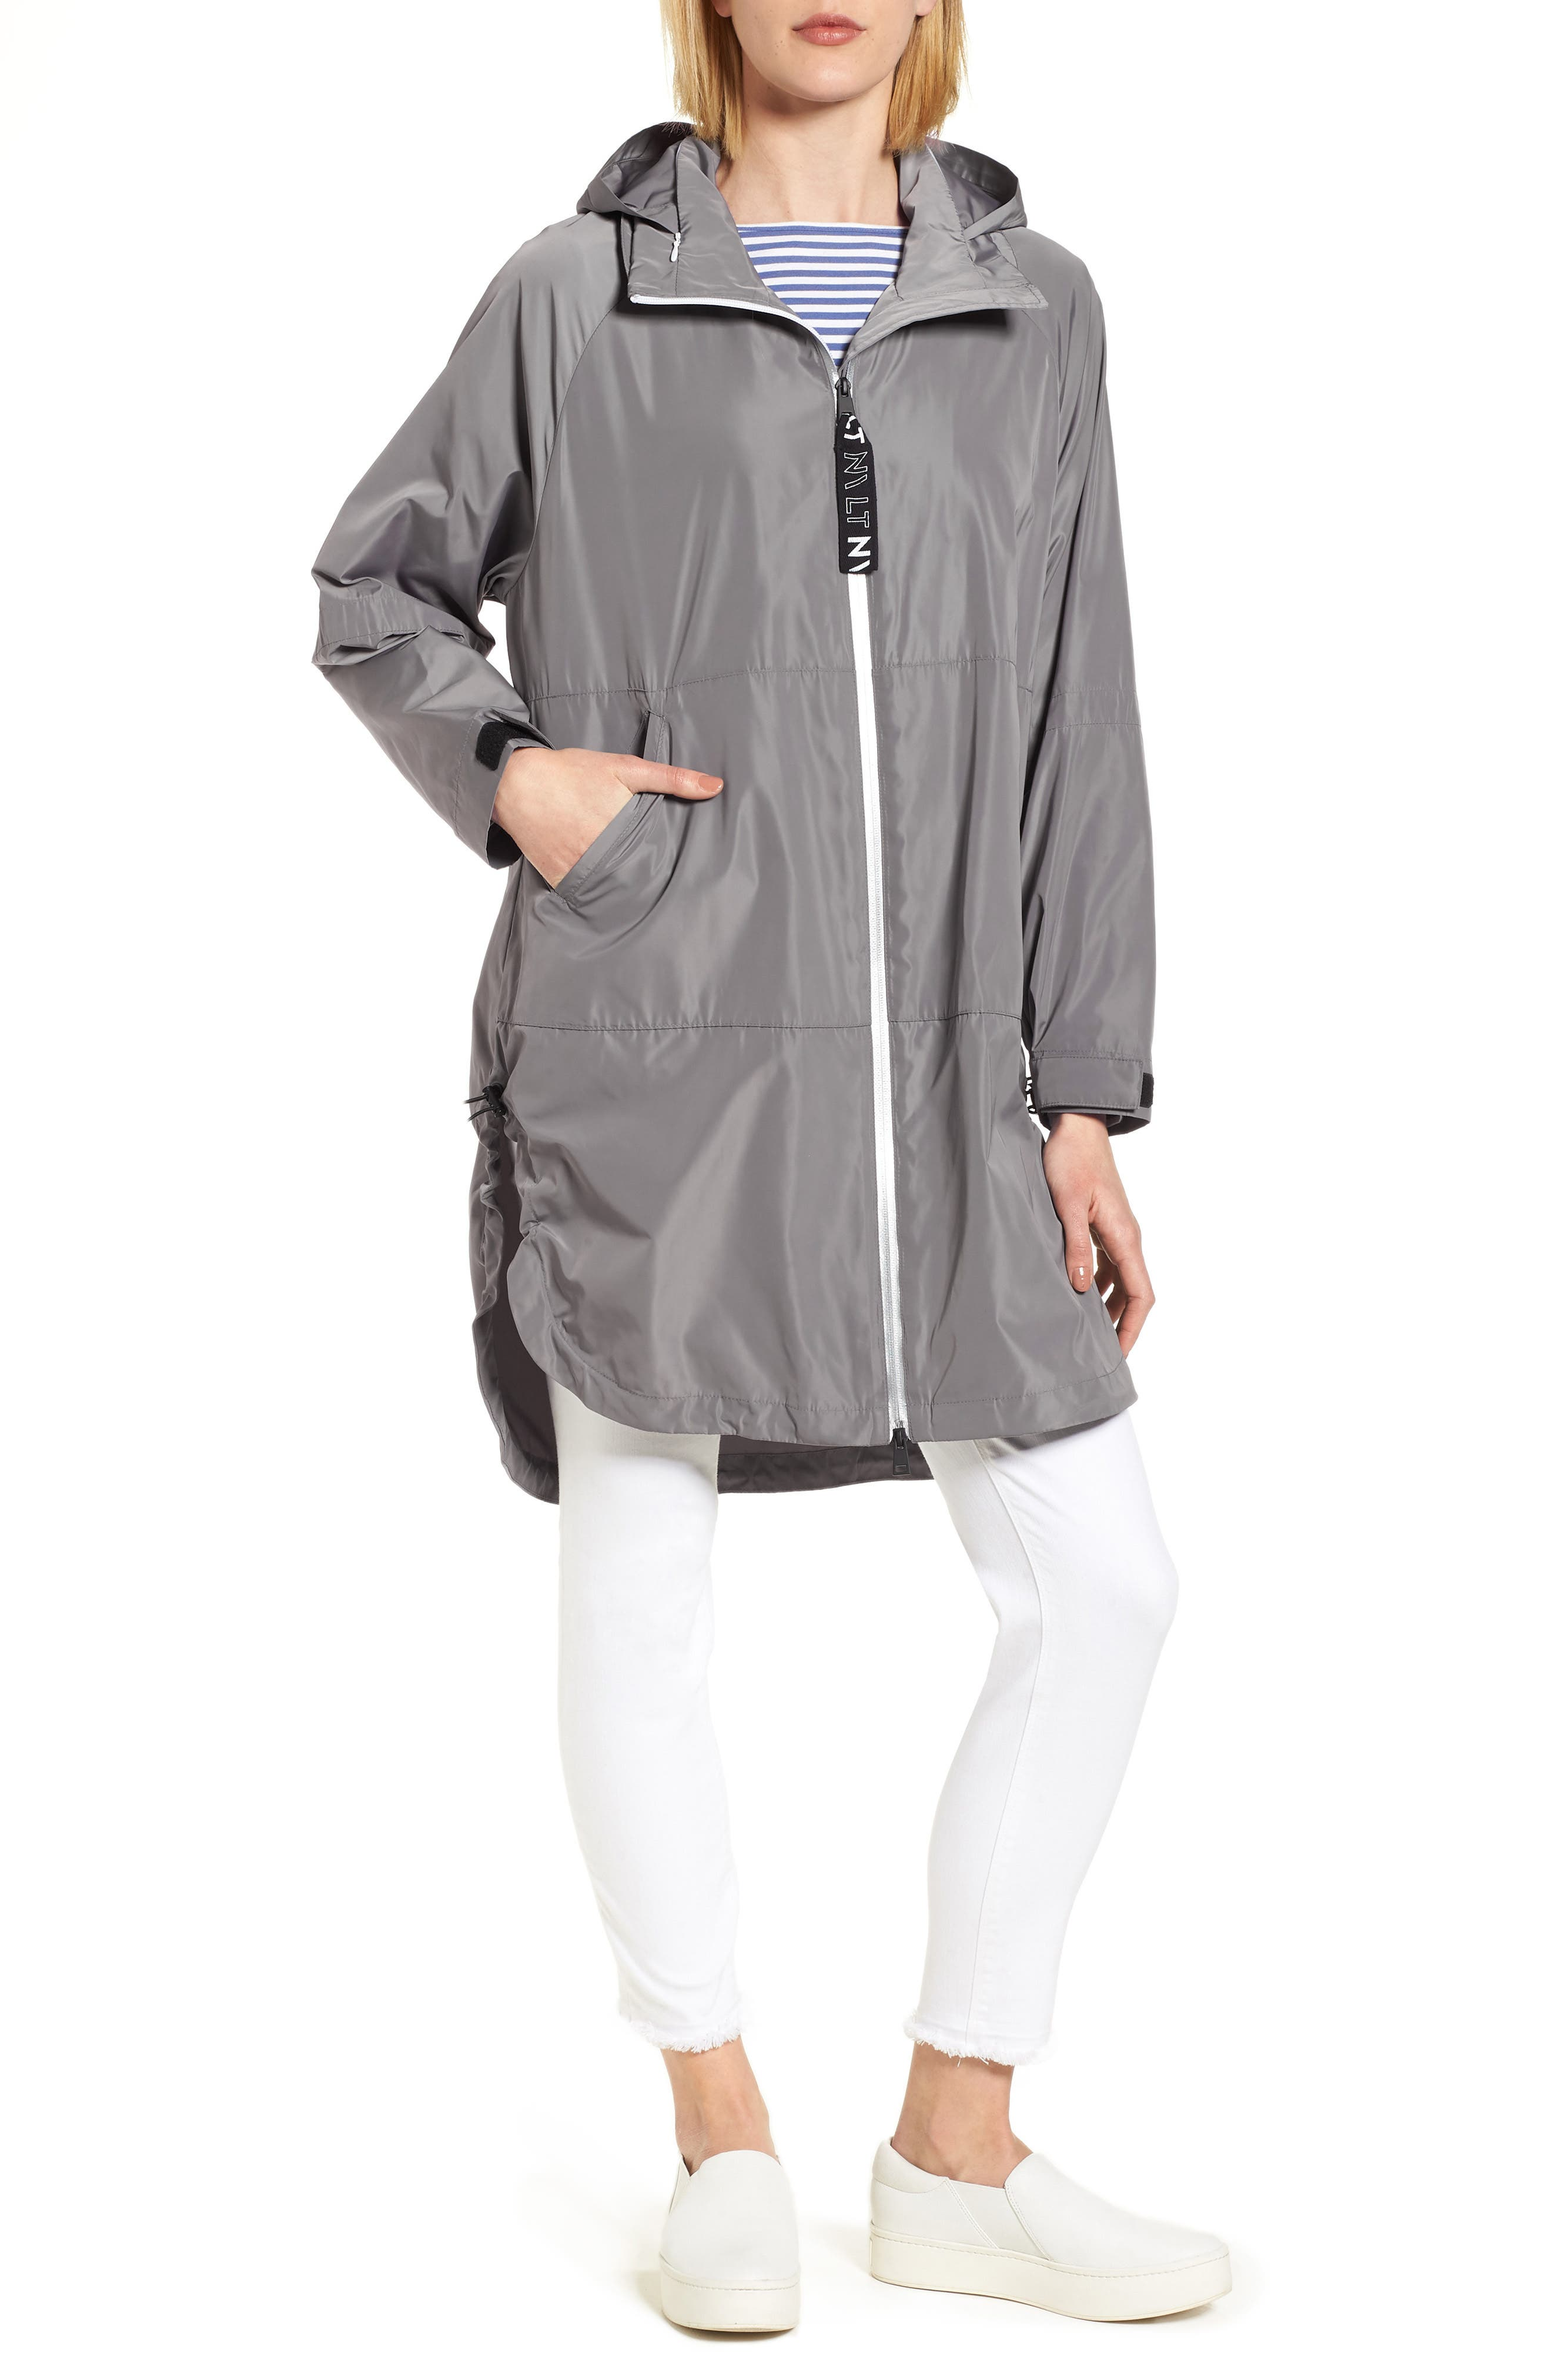 Poly-Luxe Packable Oversize Jacket,                         Main,                         color, 020